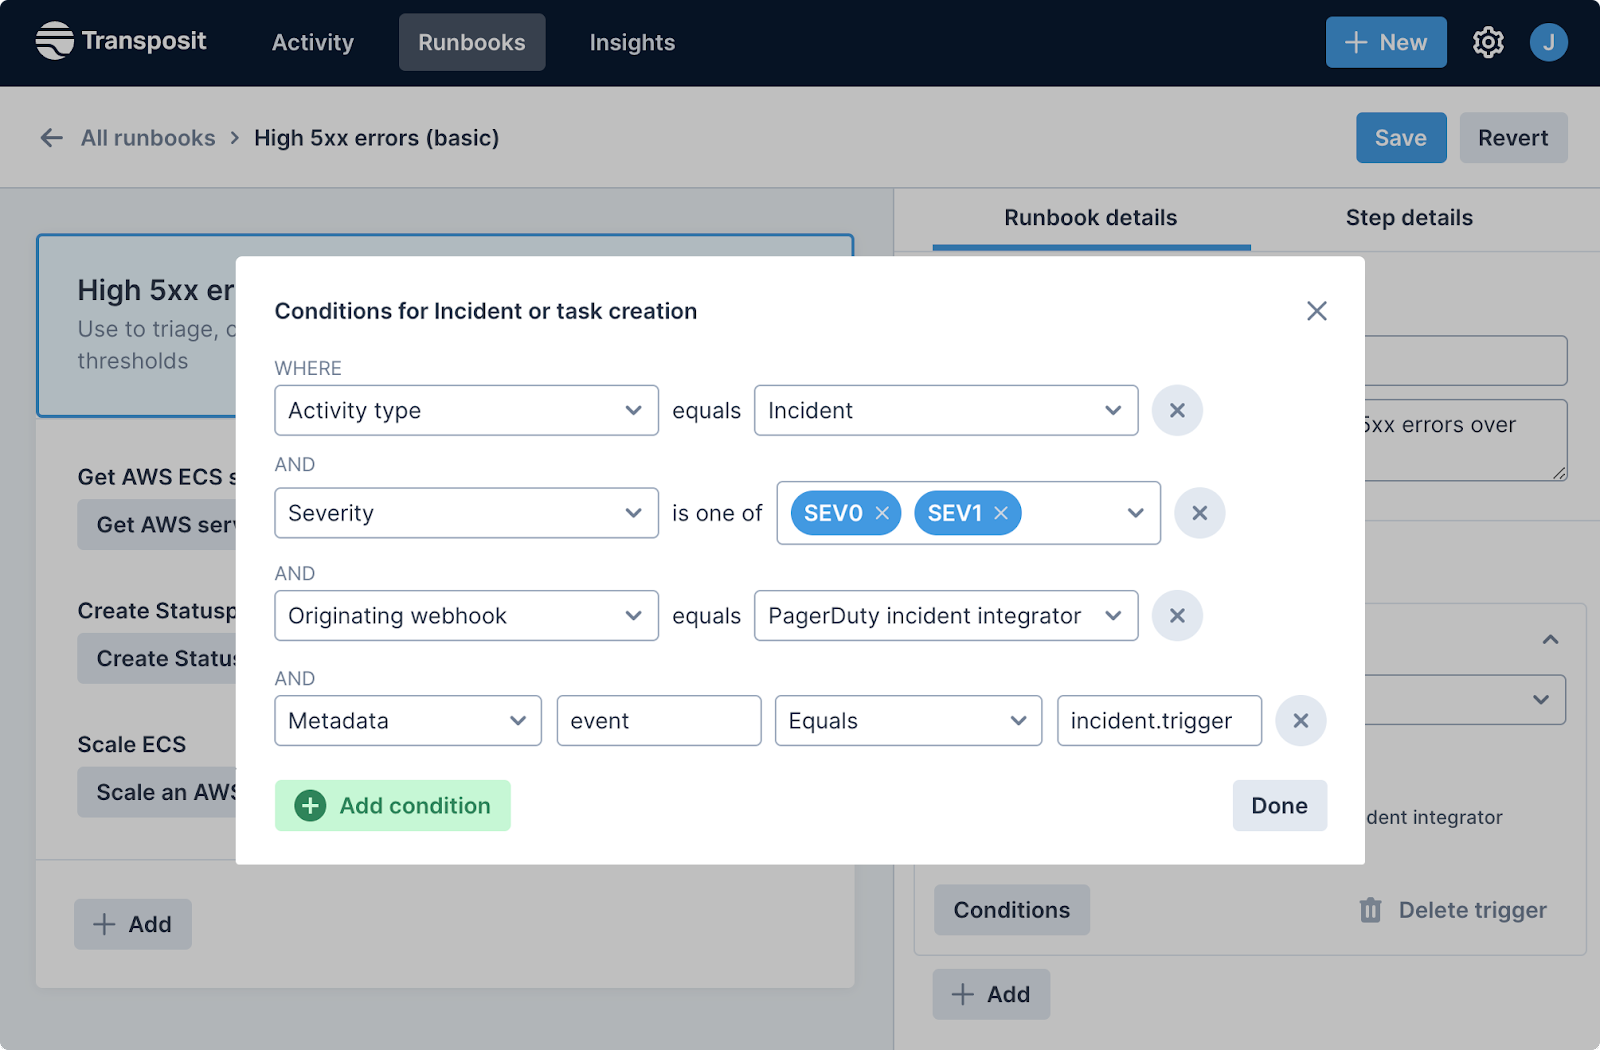 Transposit triggers for runbooks and actions